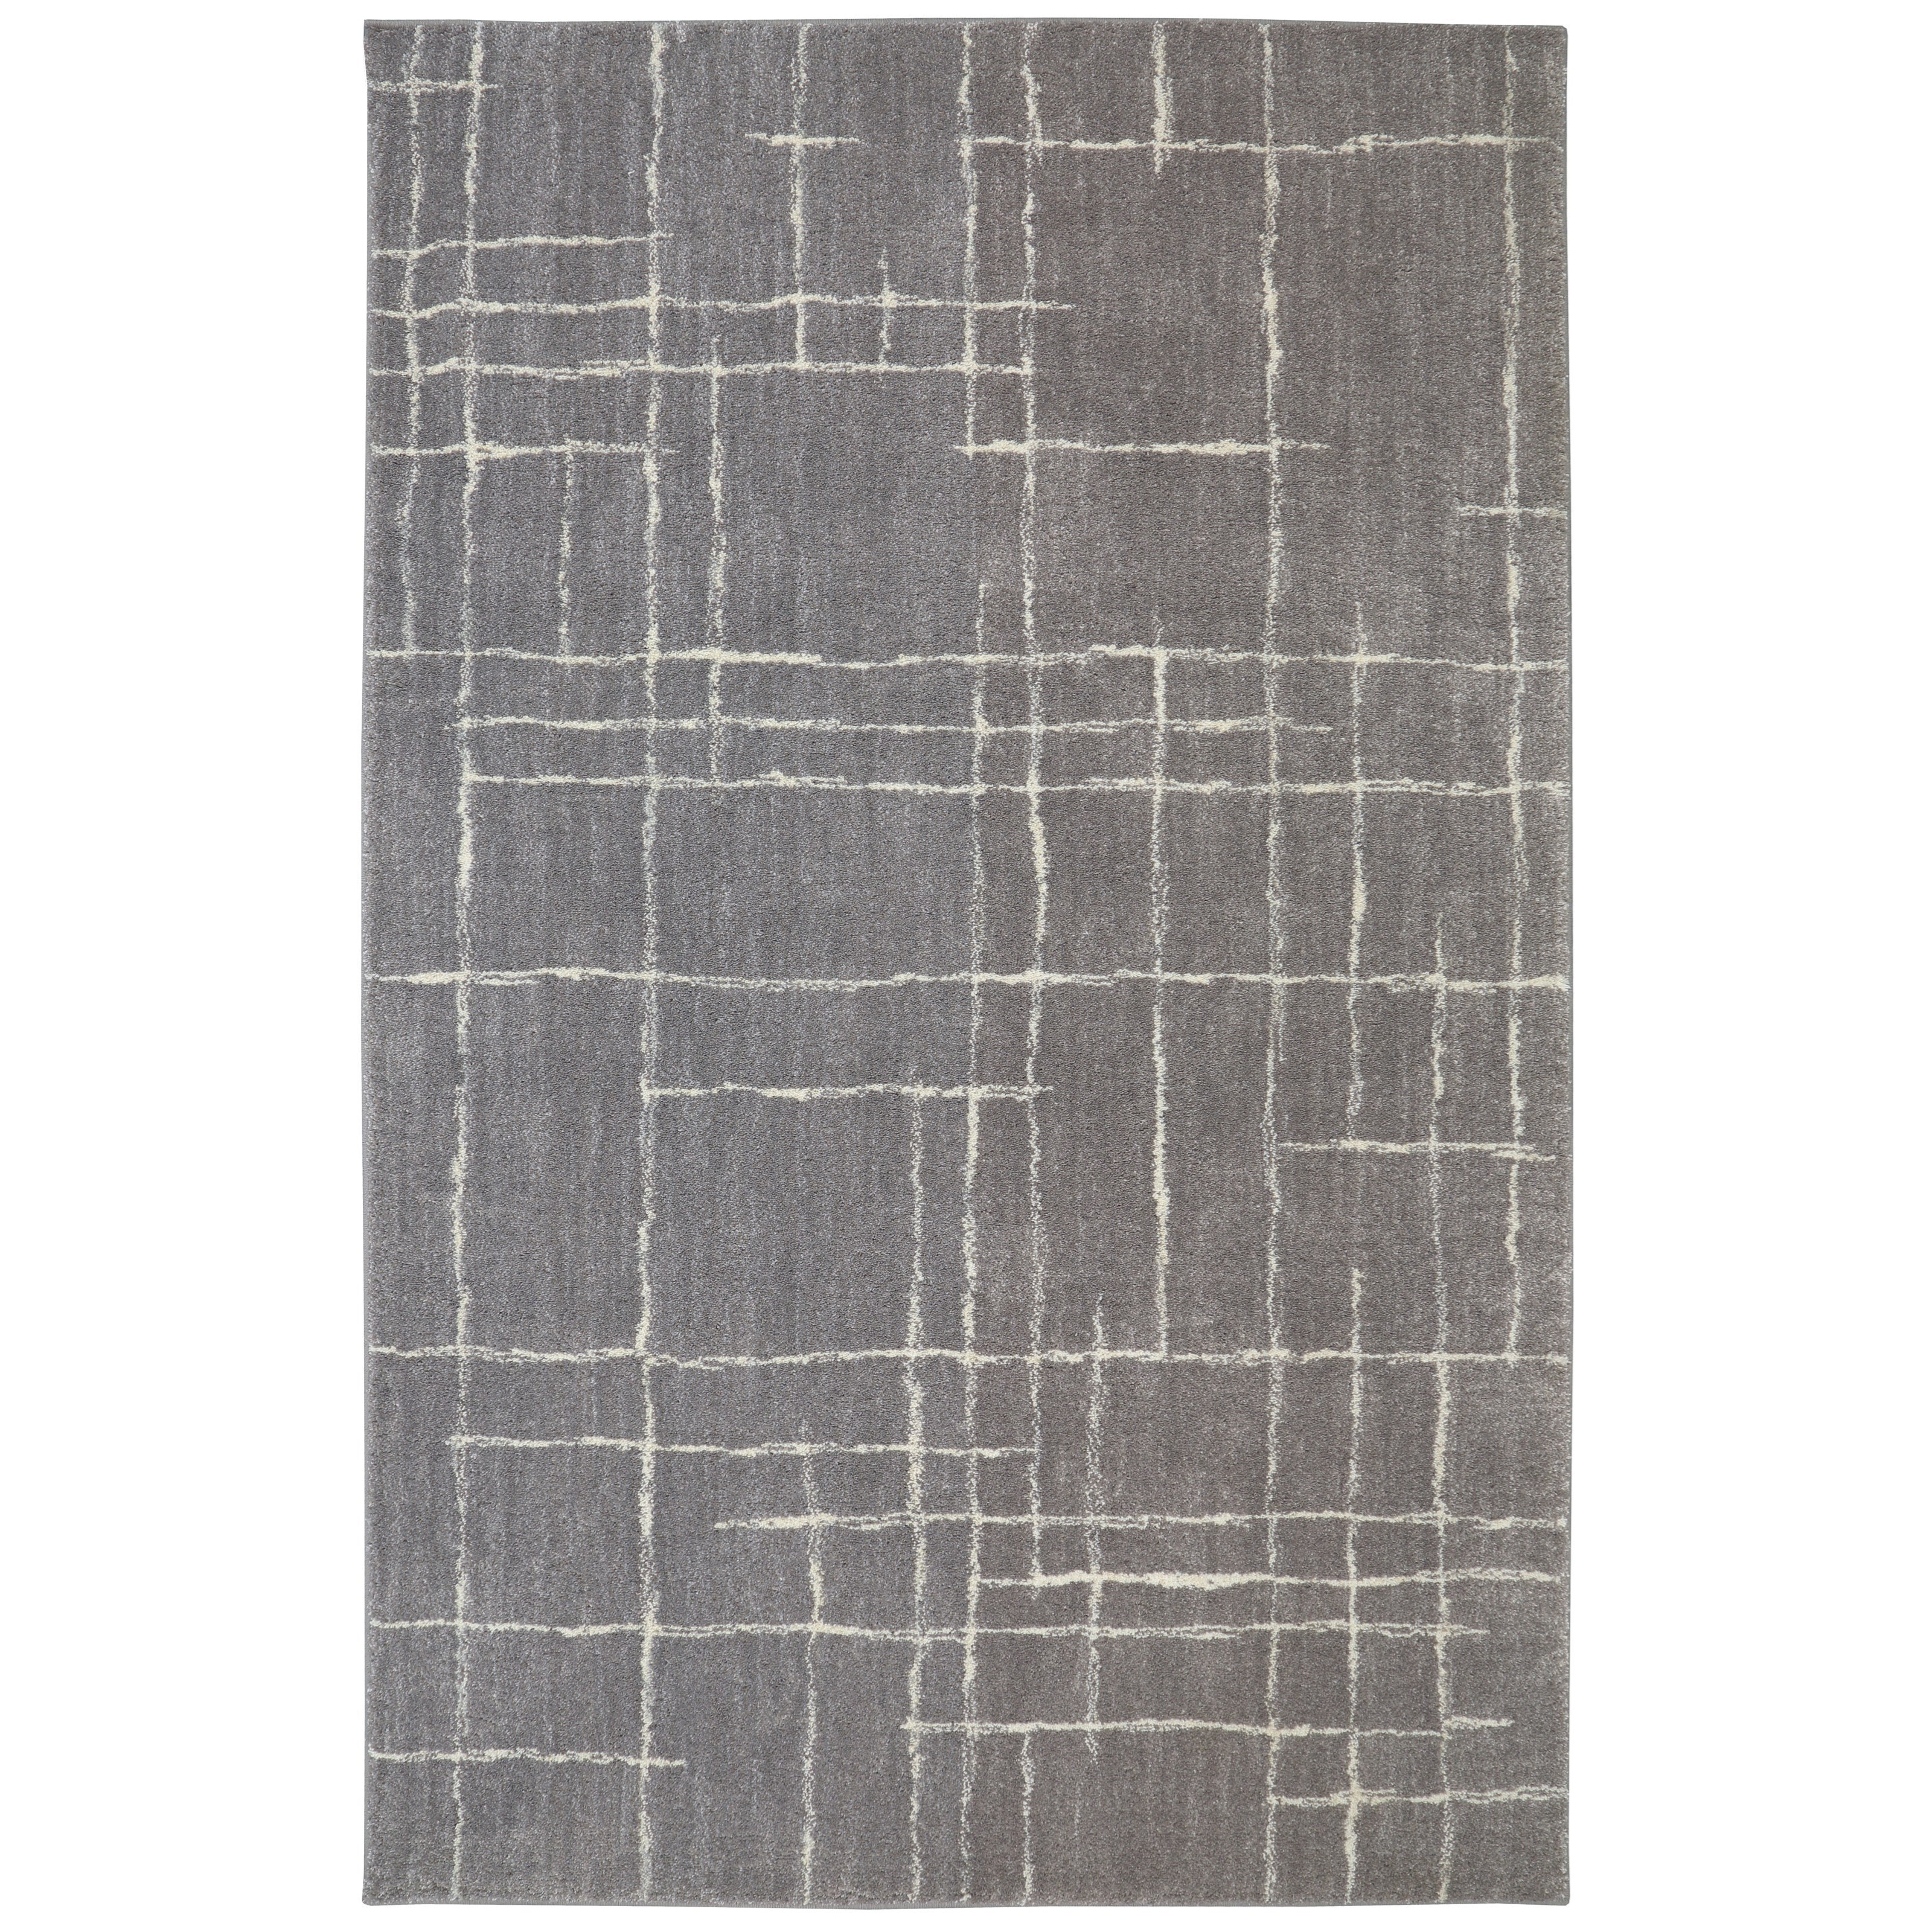 Berkshire 8'x10' Chatham Grey Area Rug by American Rug Craftsmen at Alison Craig Home Furnishings